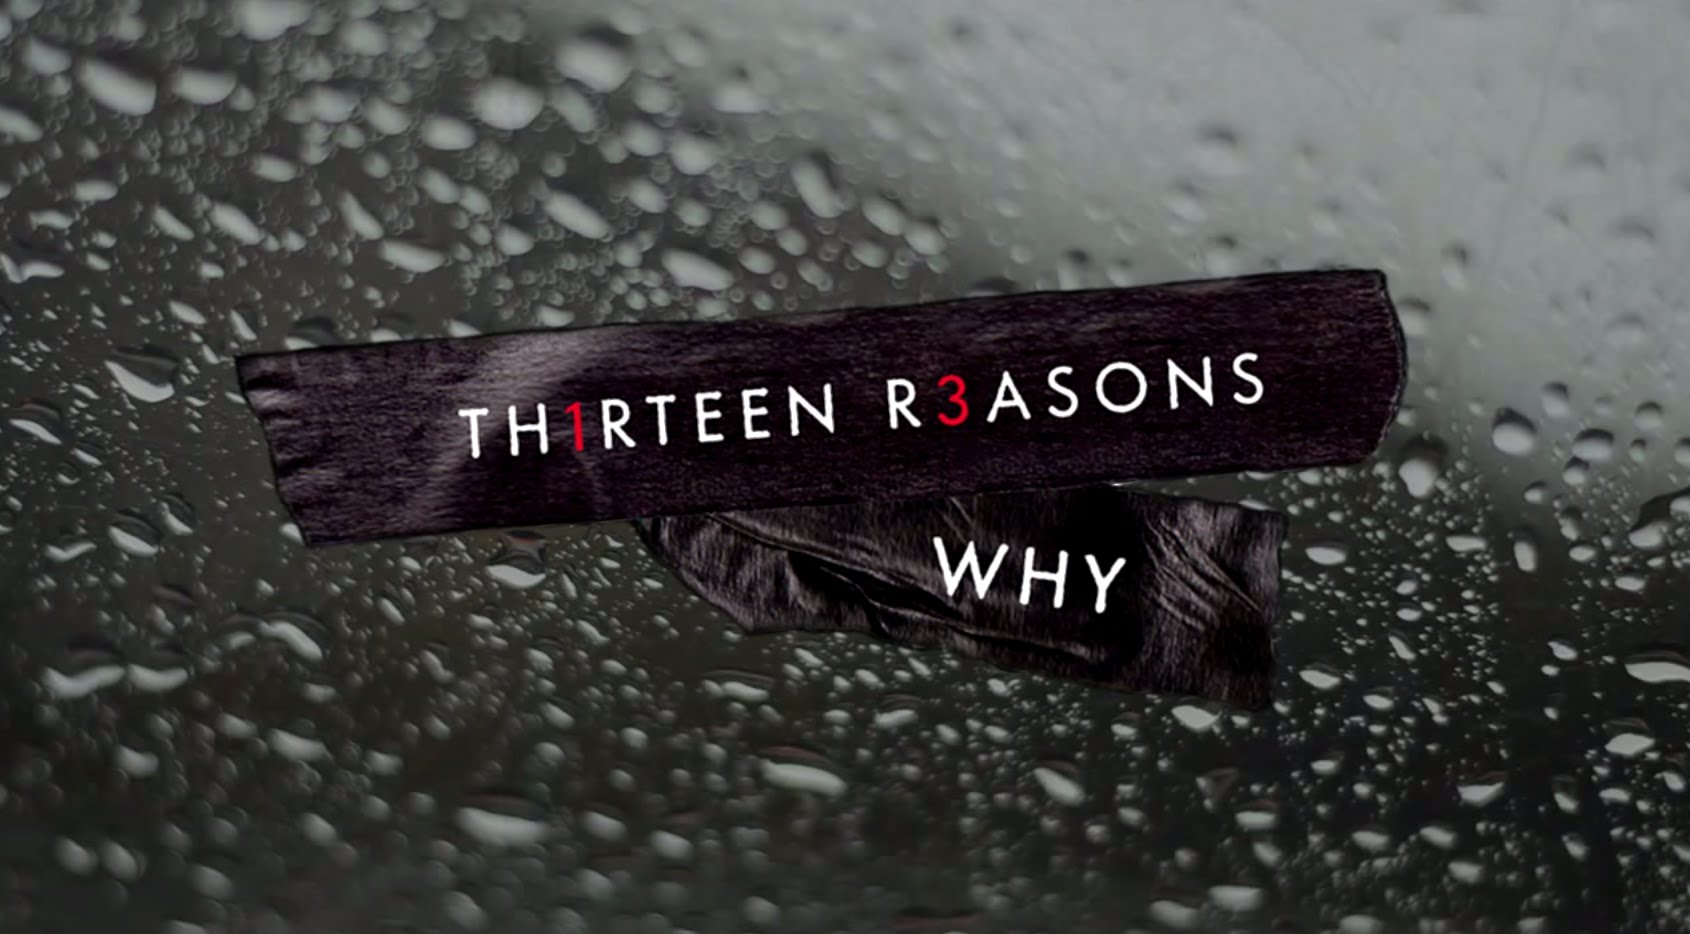 Reasons Why author Jay Asher wants second season to Netflix show